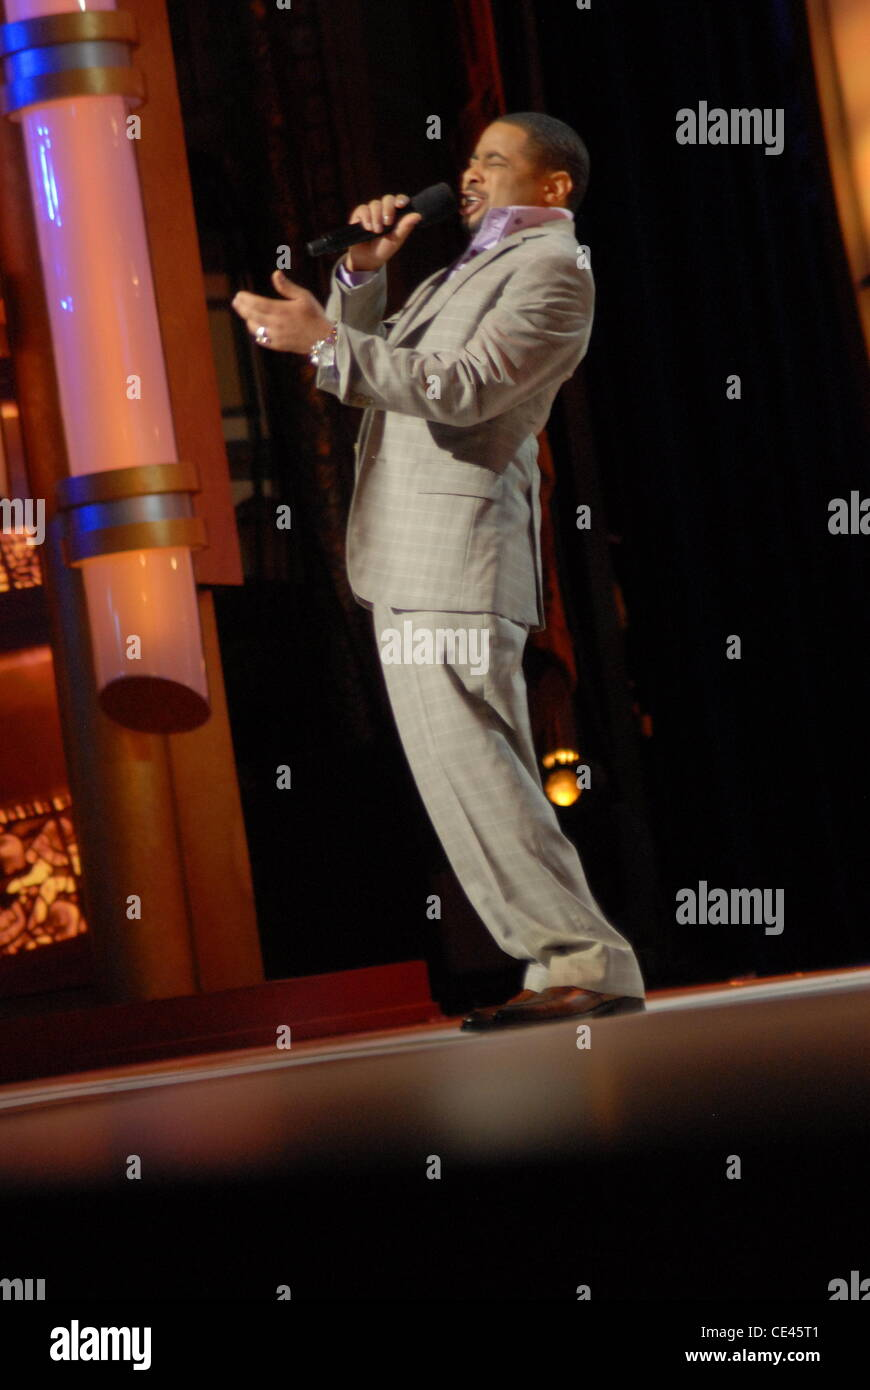 Celebration of gospel on bet 2010 what does the moneyline mean for sports betting